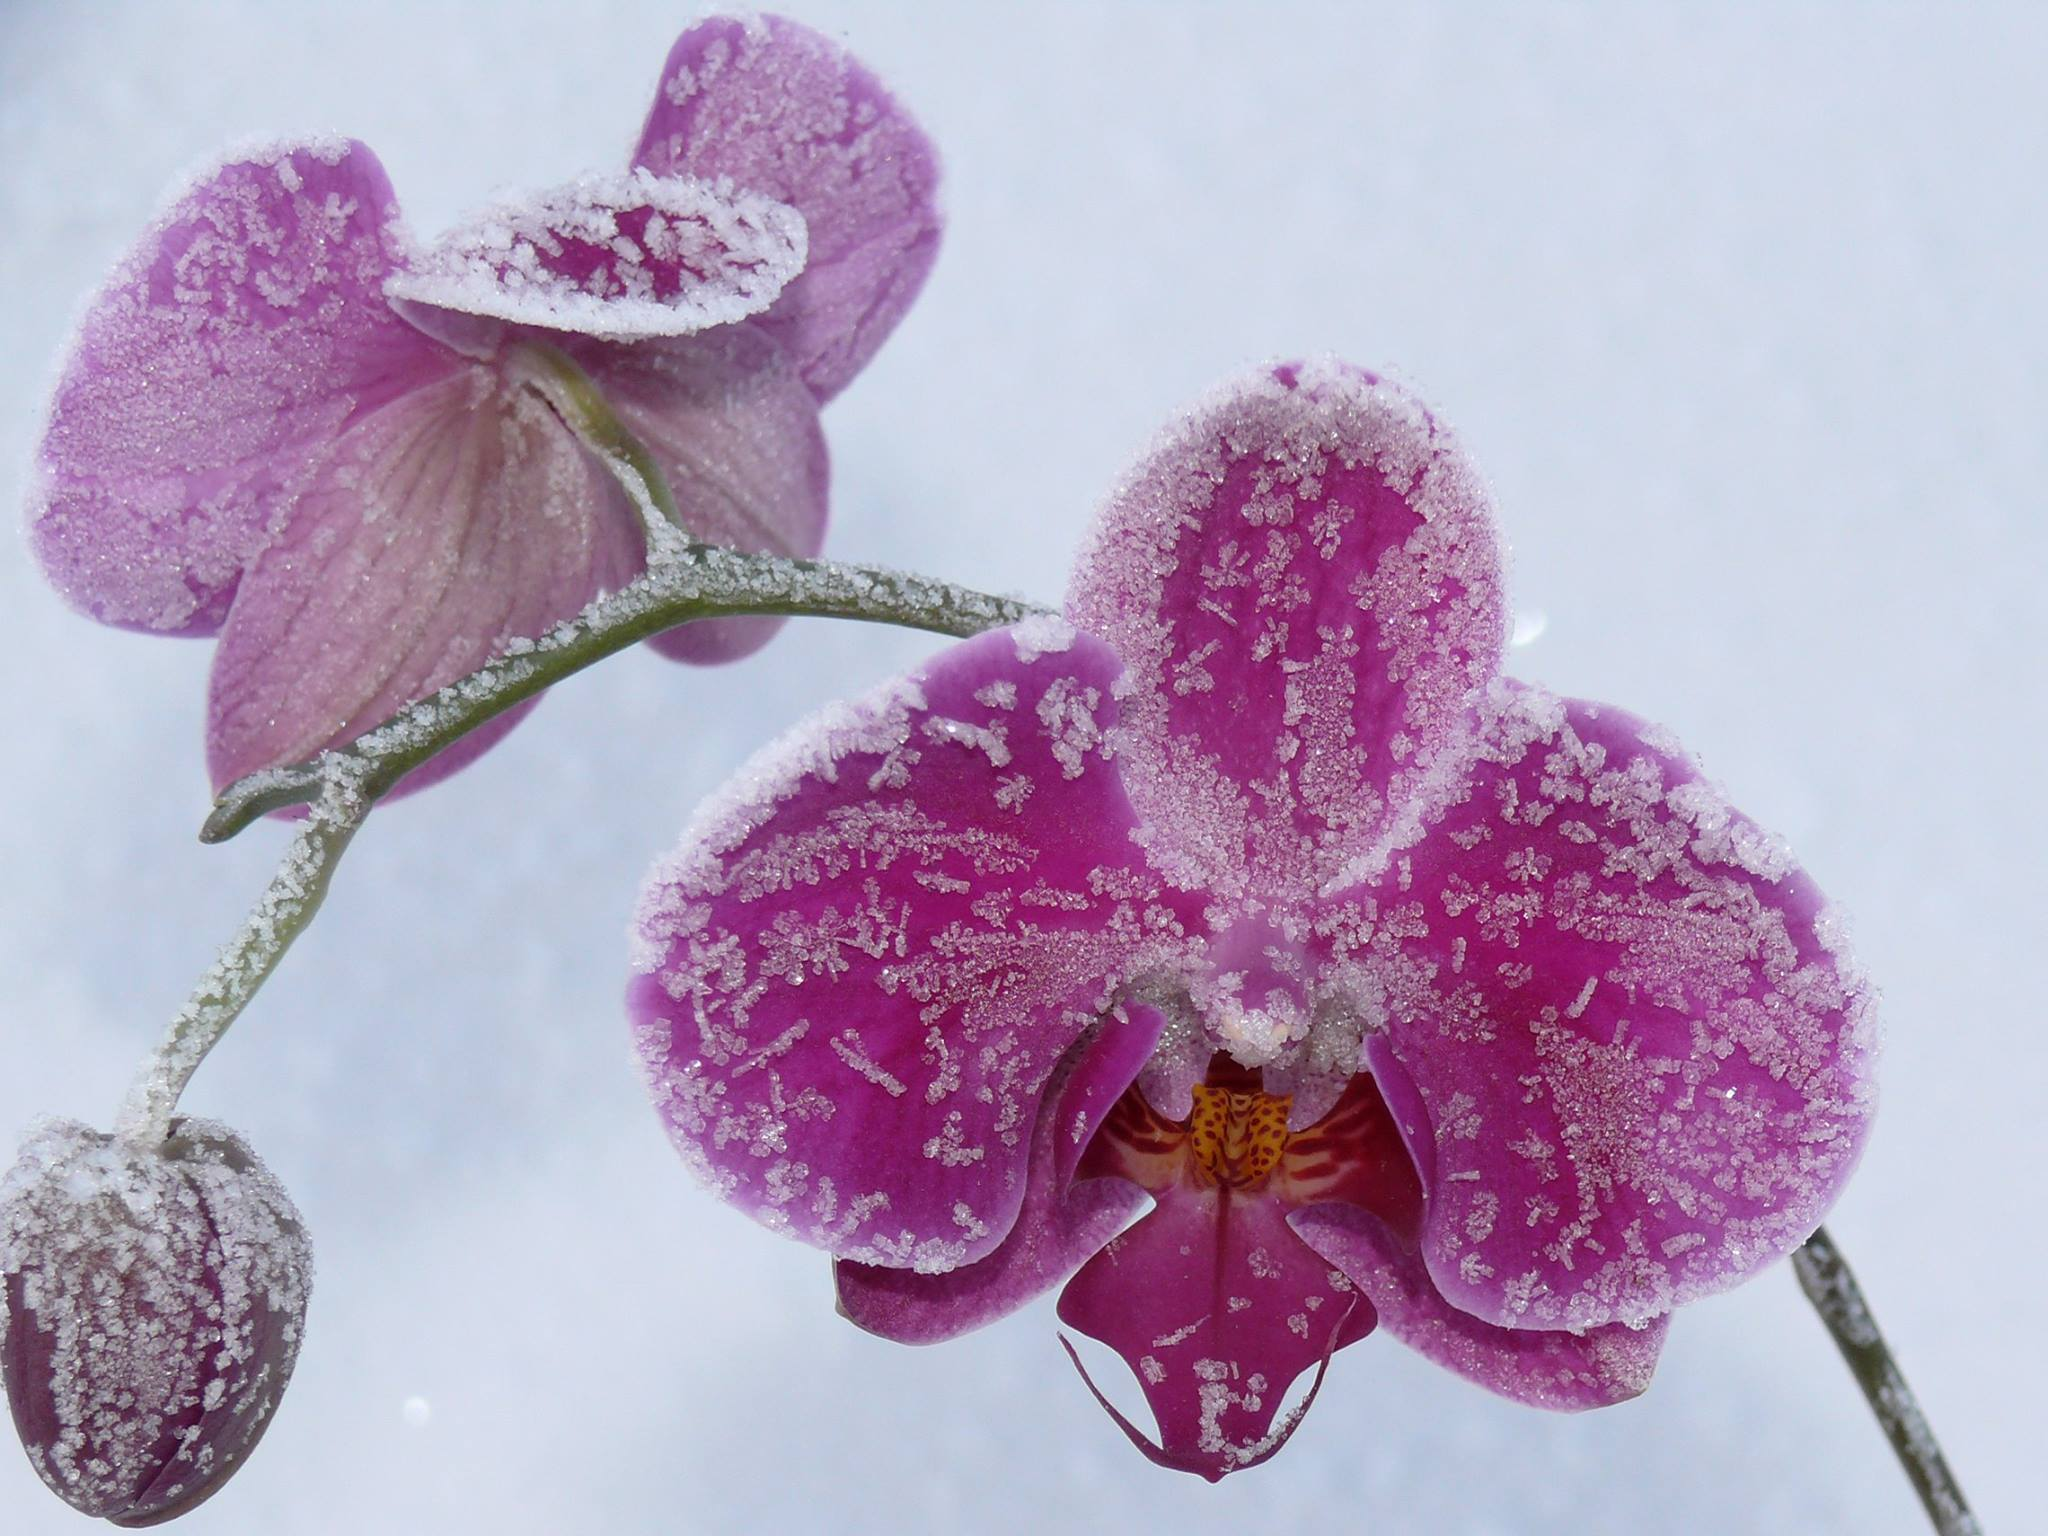 Phalaenopsis_in_ice.jpg